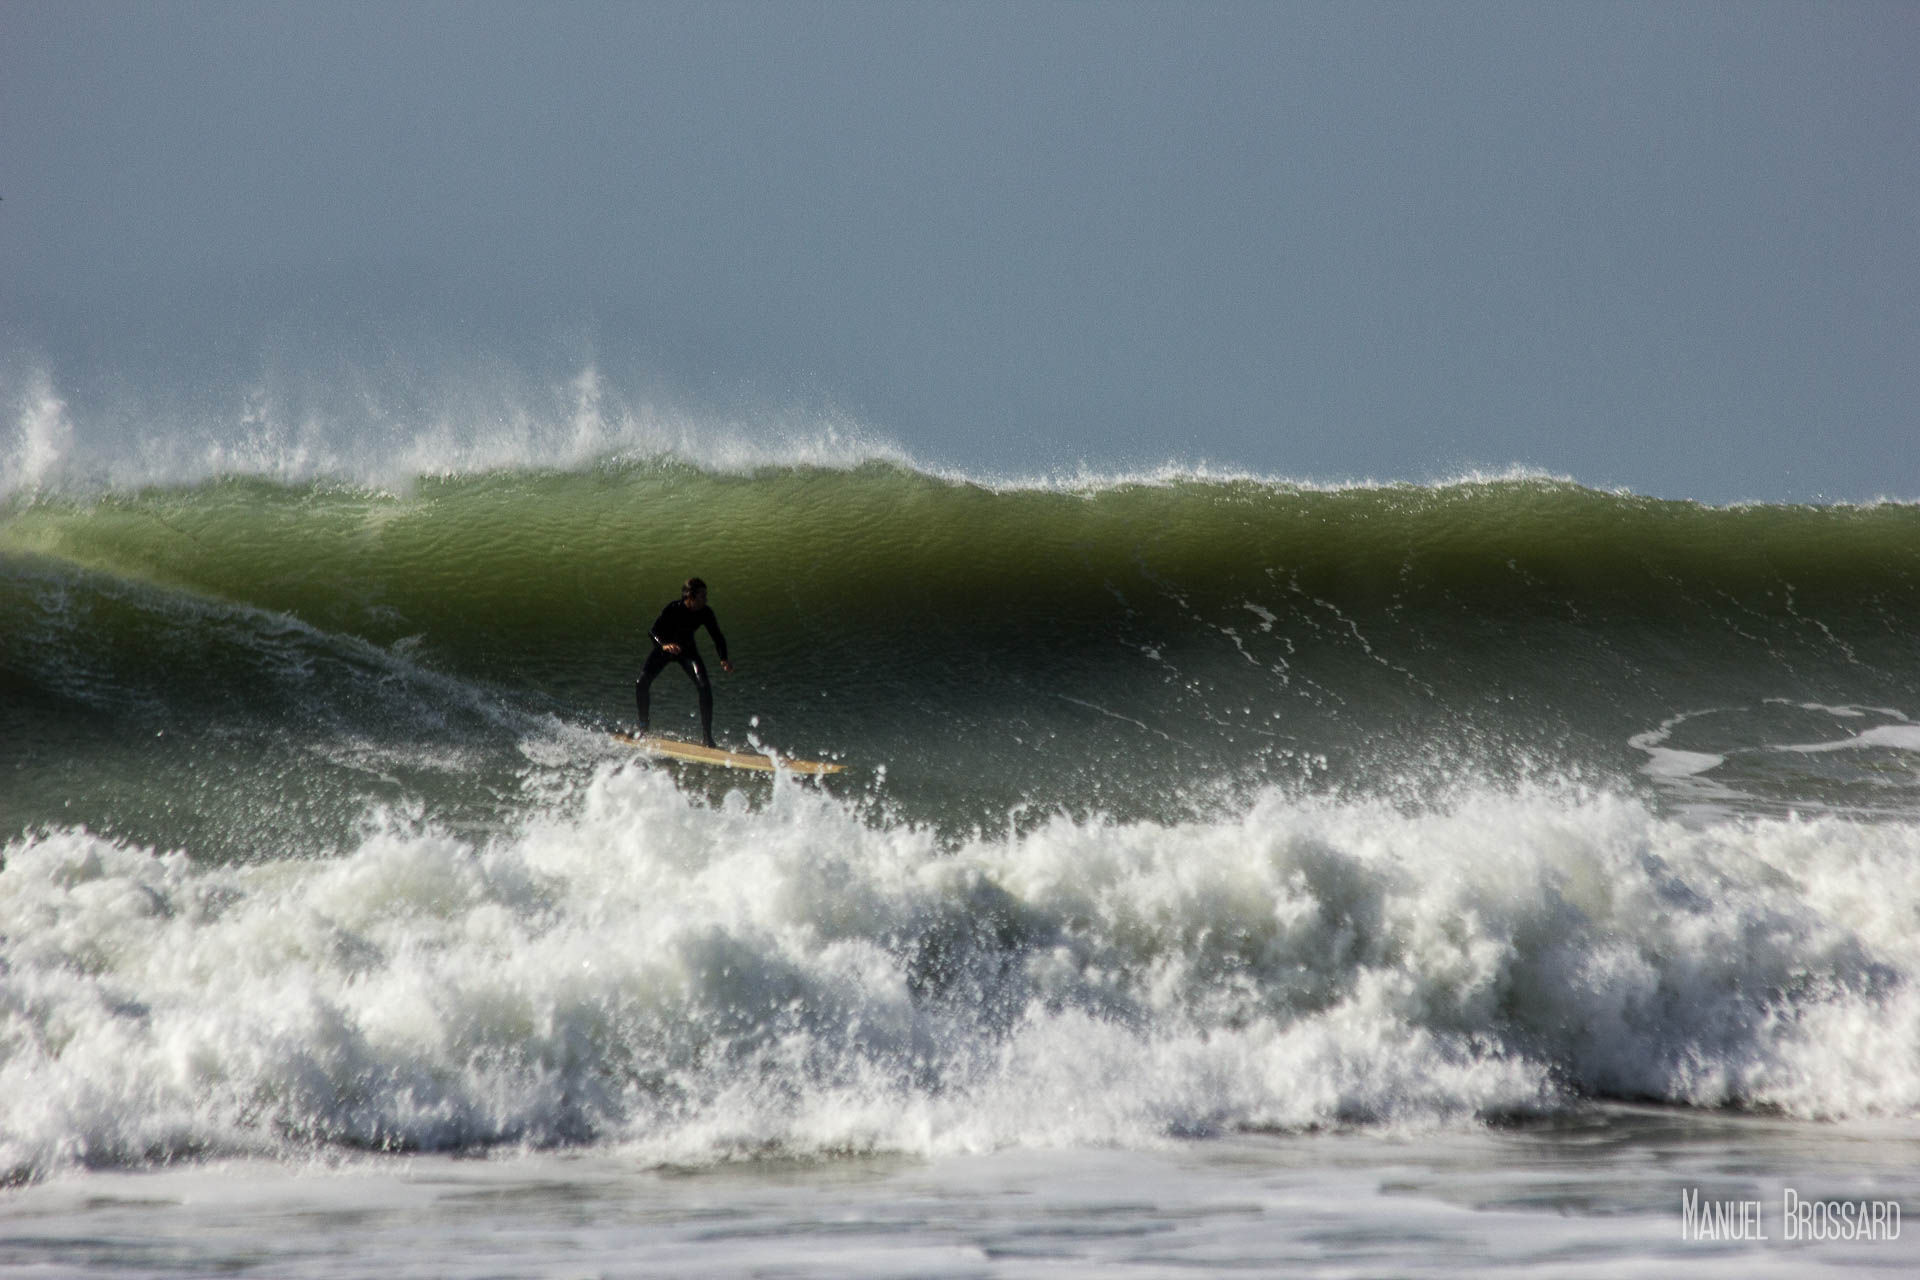 Un surfeur ride une vague glassy